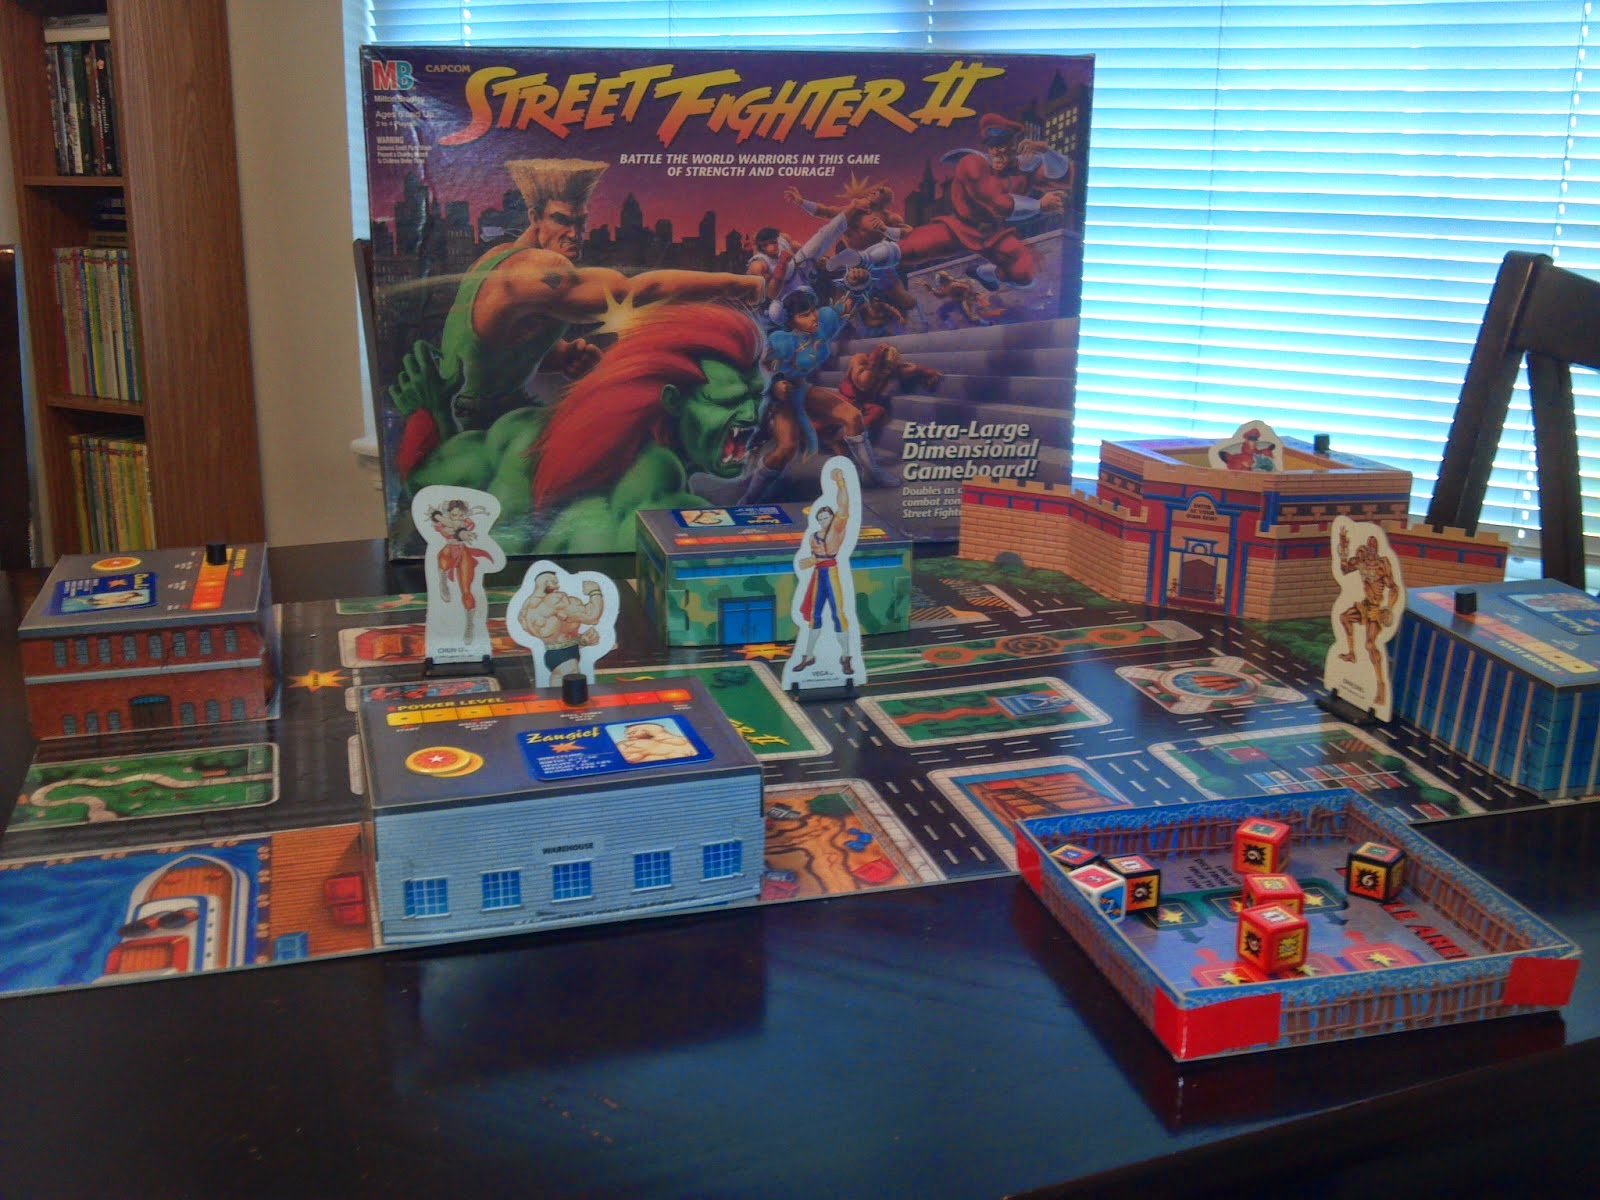 Street fighter kickstarter 4 abril for Not alone juego de mesa